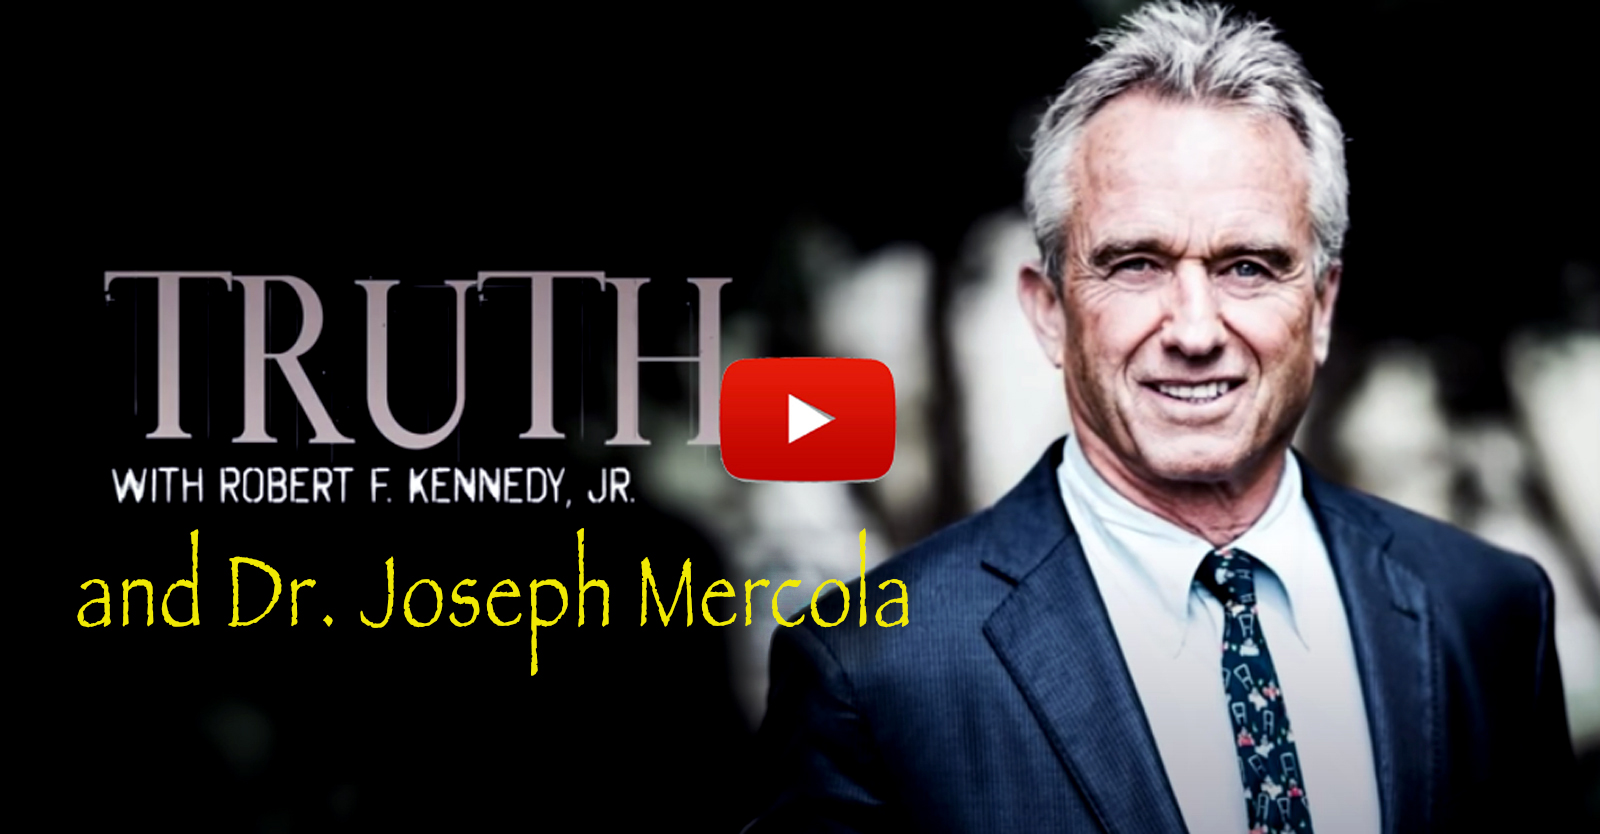 'truth'-with-rfk,-jr-and-dr.-joseph-mercola:-the-shadowy-alliance-between-big-pharma-and-big-tech-•-children's-health-defense